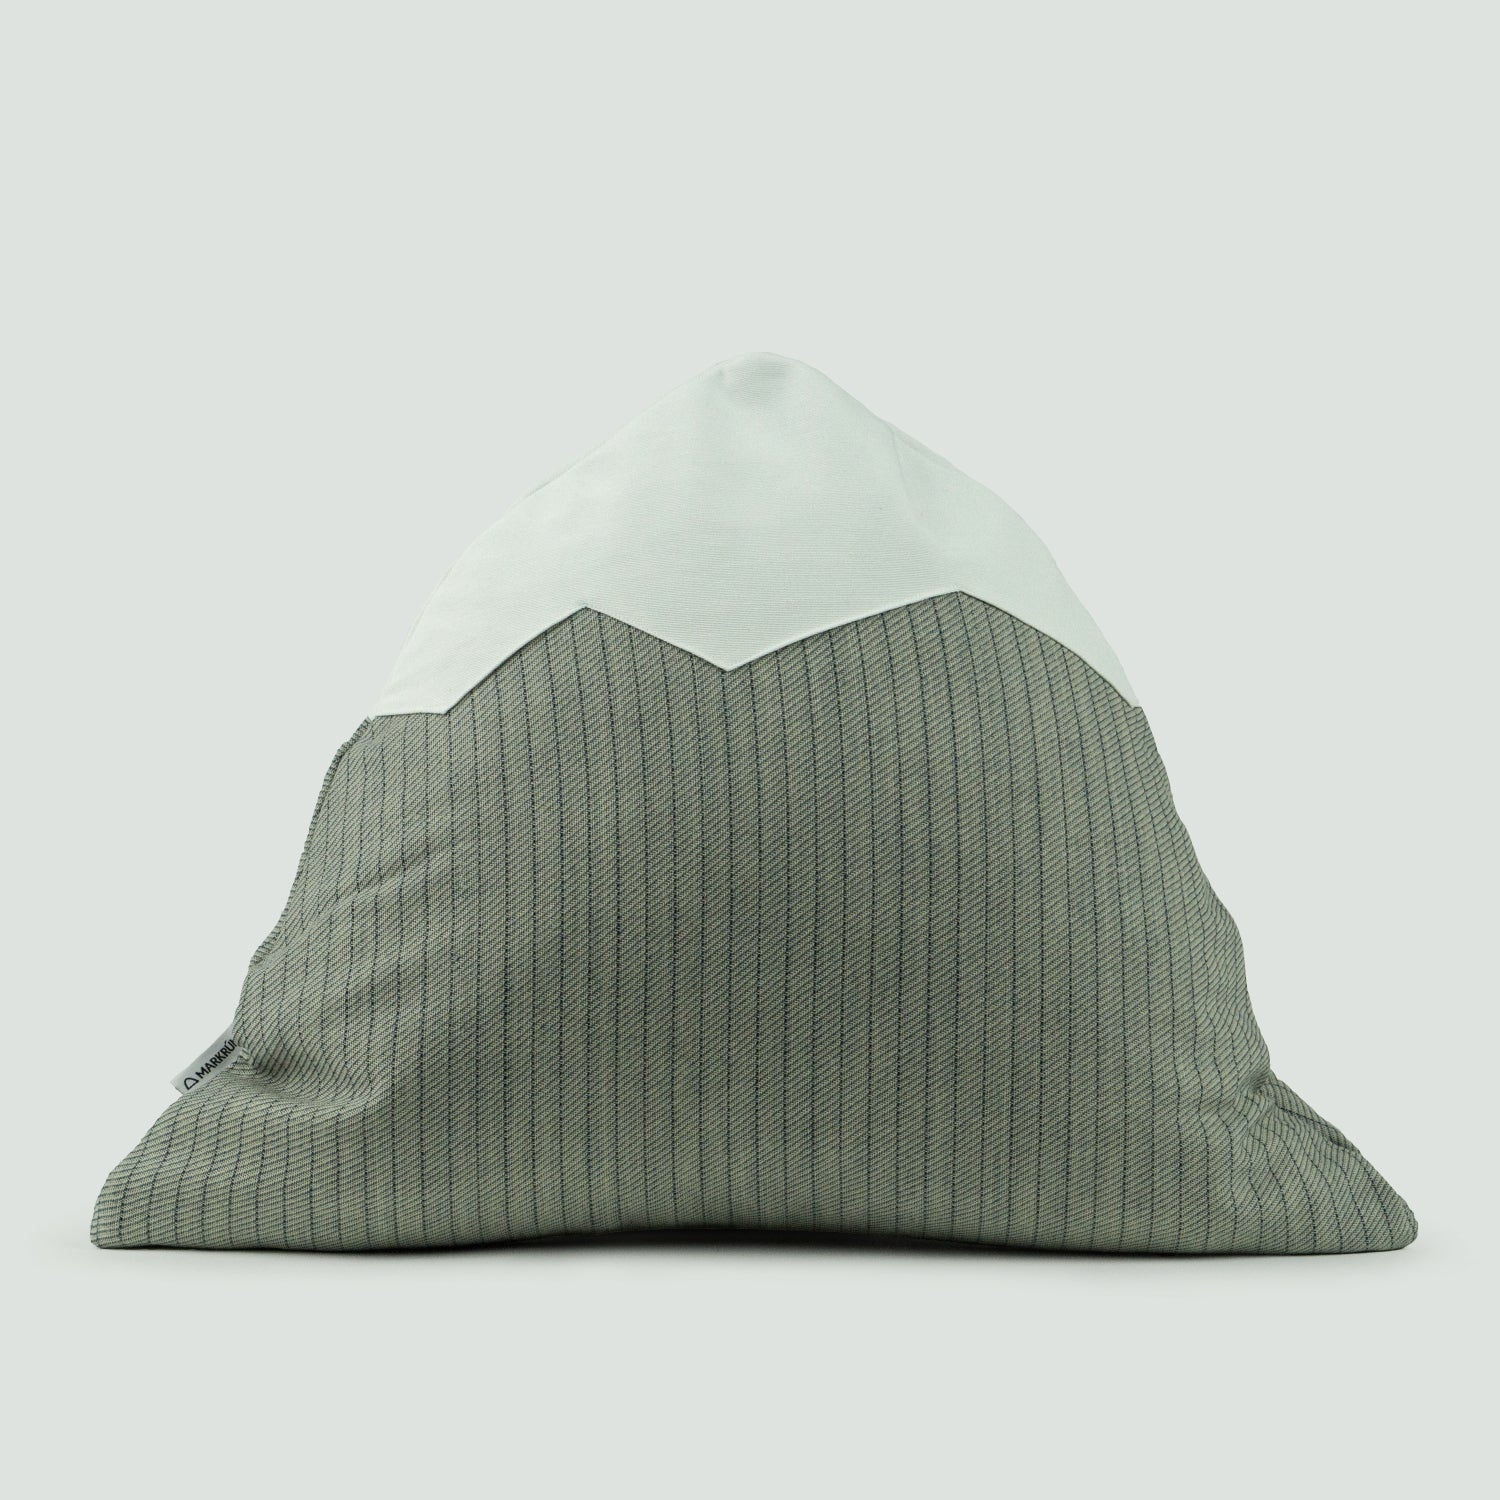 Image of Mountain Pillow C58 | Gray Striped